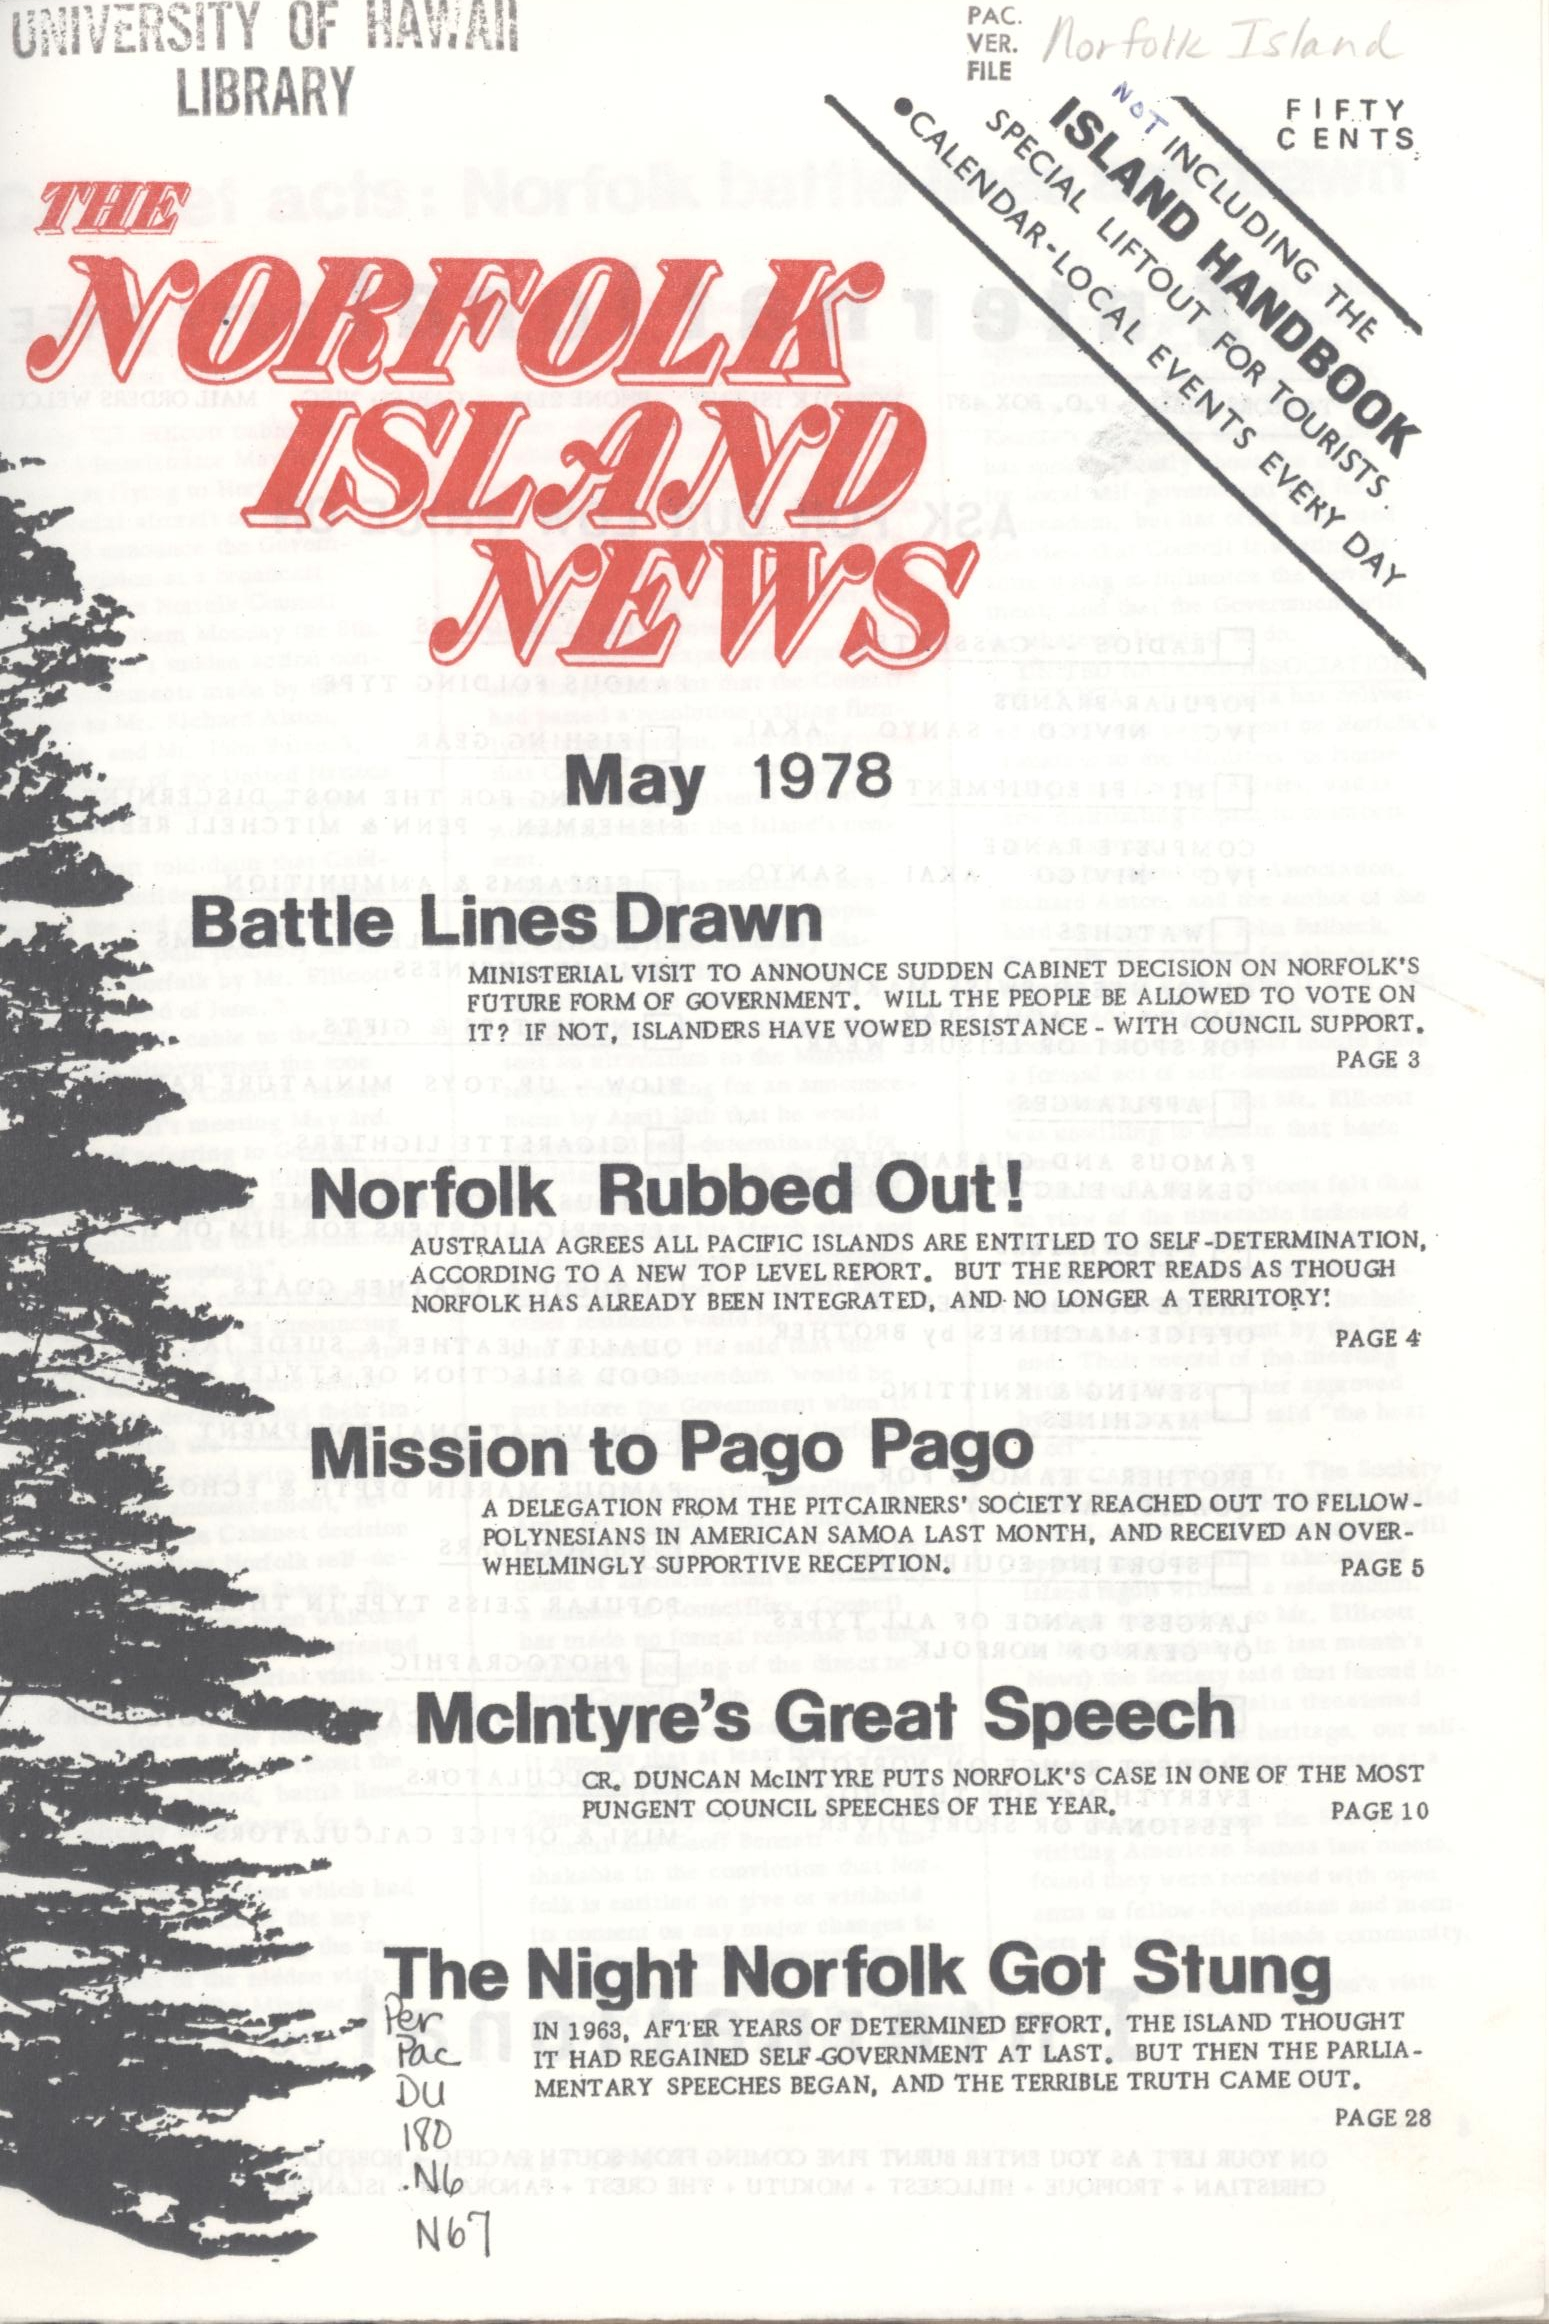 Cover of the 'The Norfolk Island News'